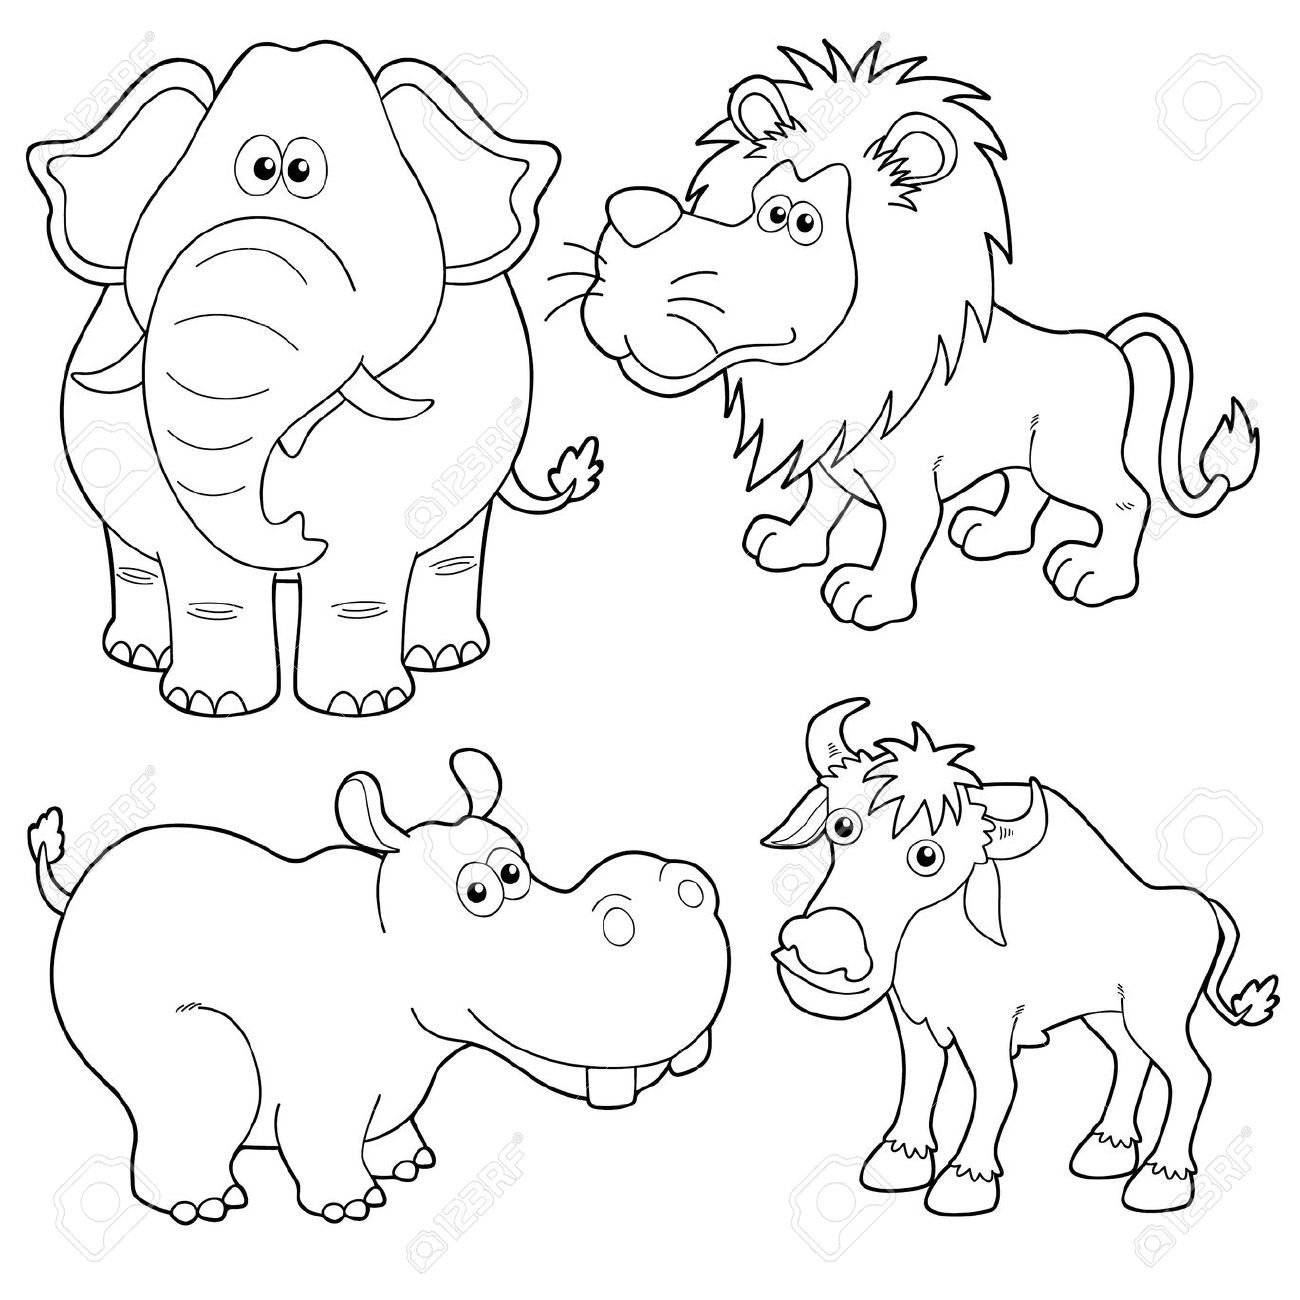 Drawing Outlines Of Animals